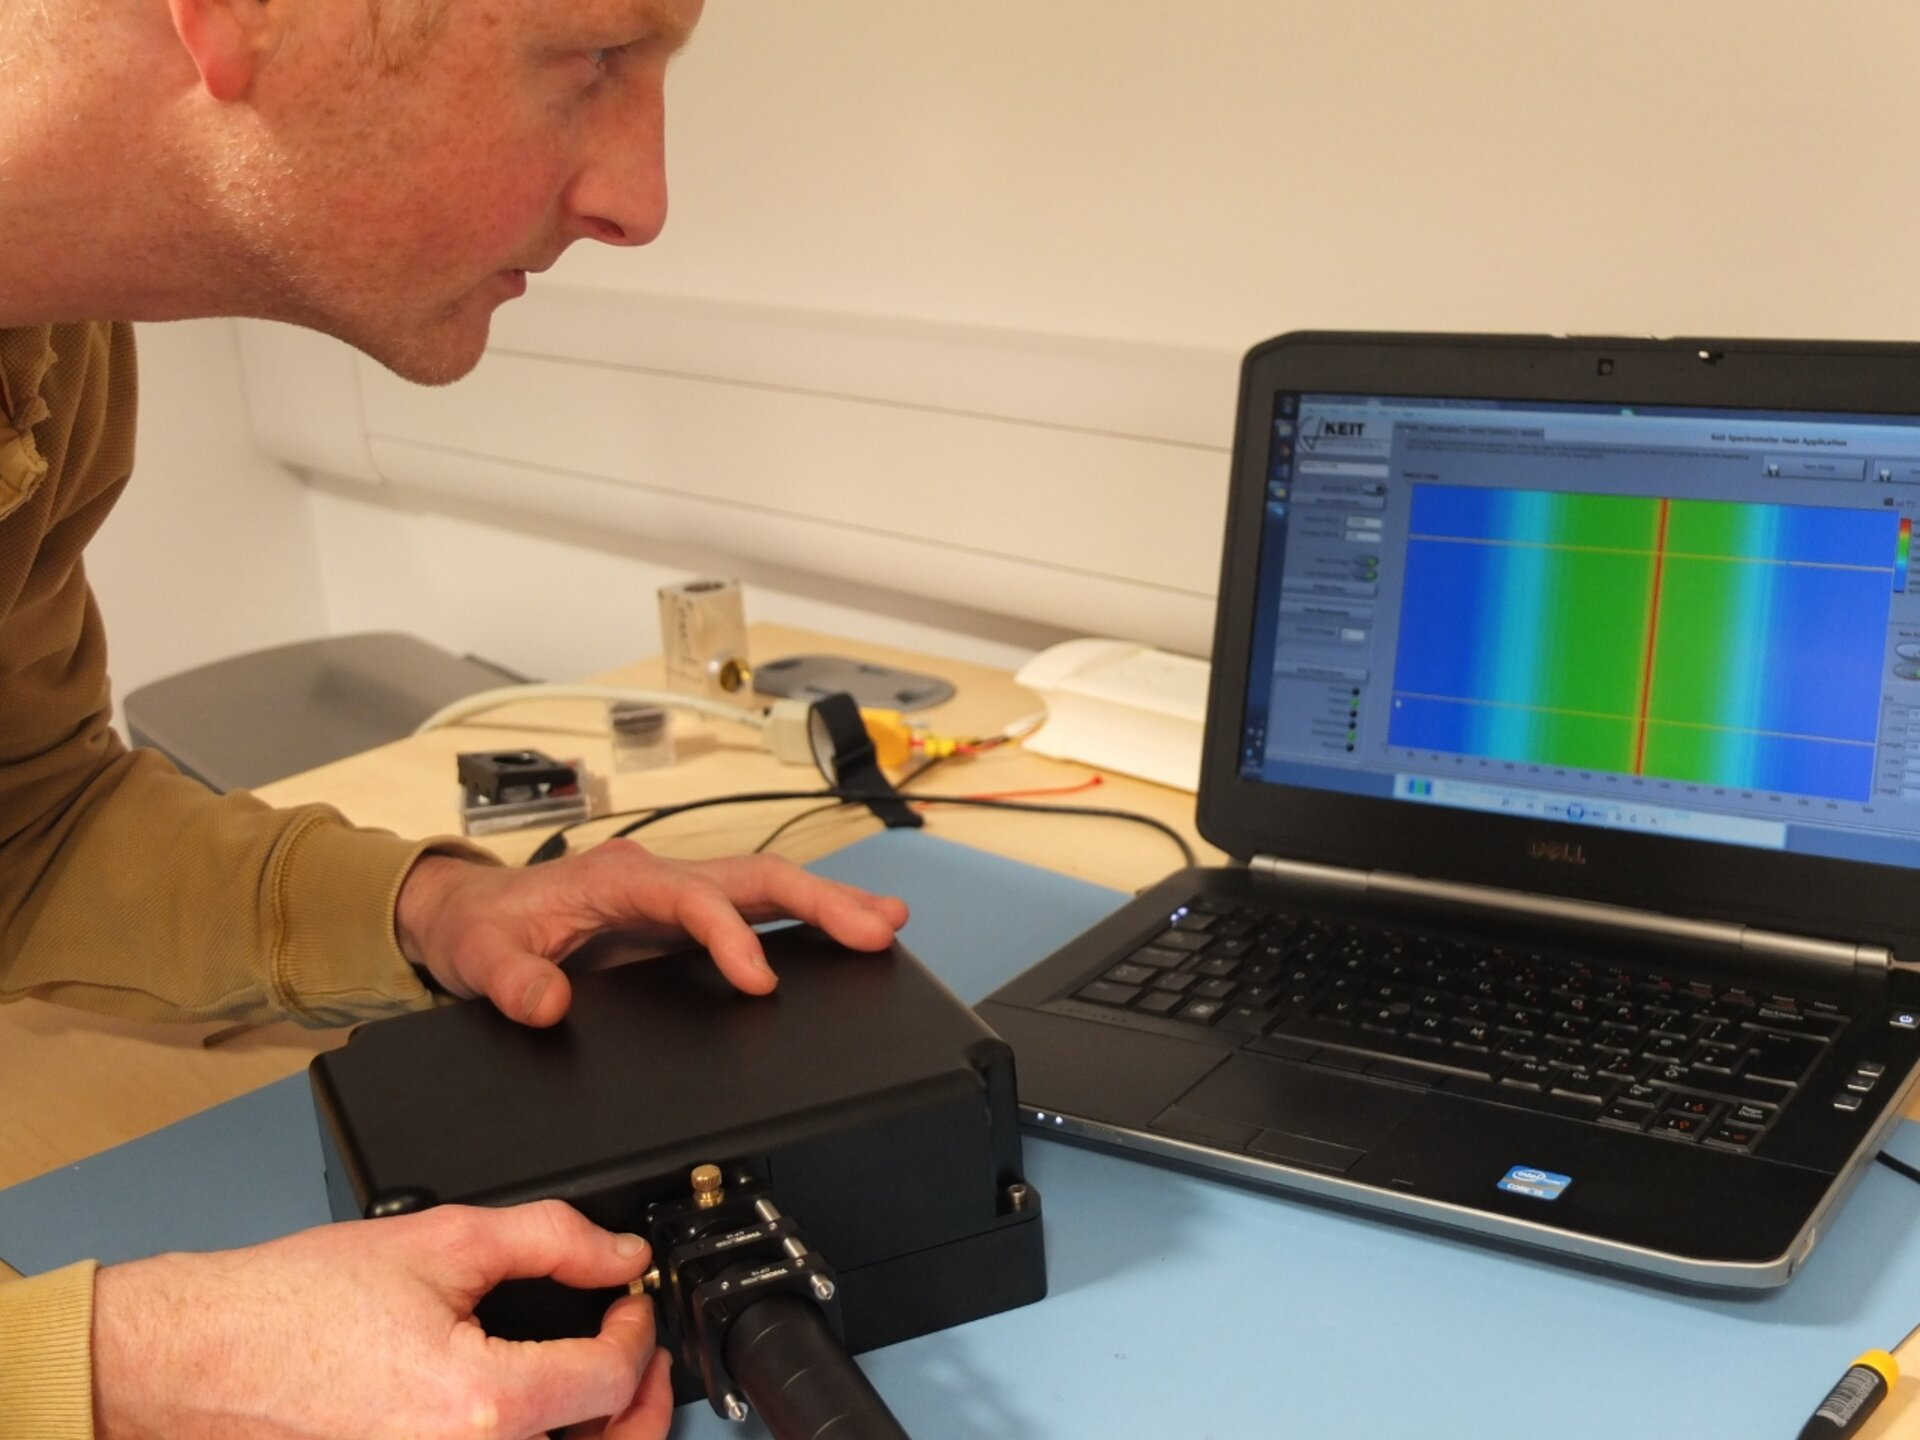 Calibrating spectrometer